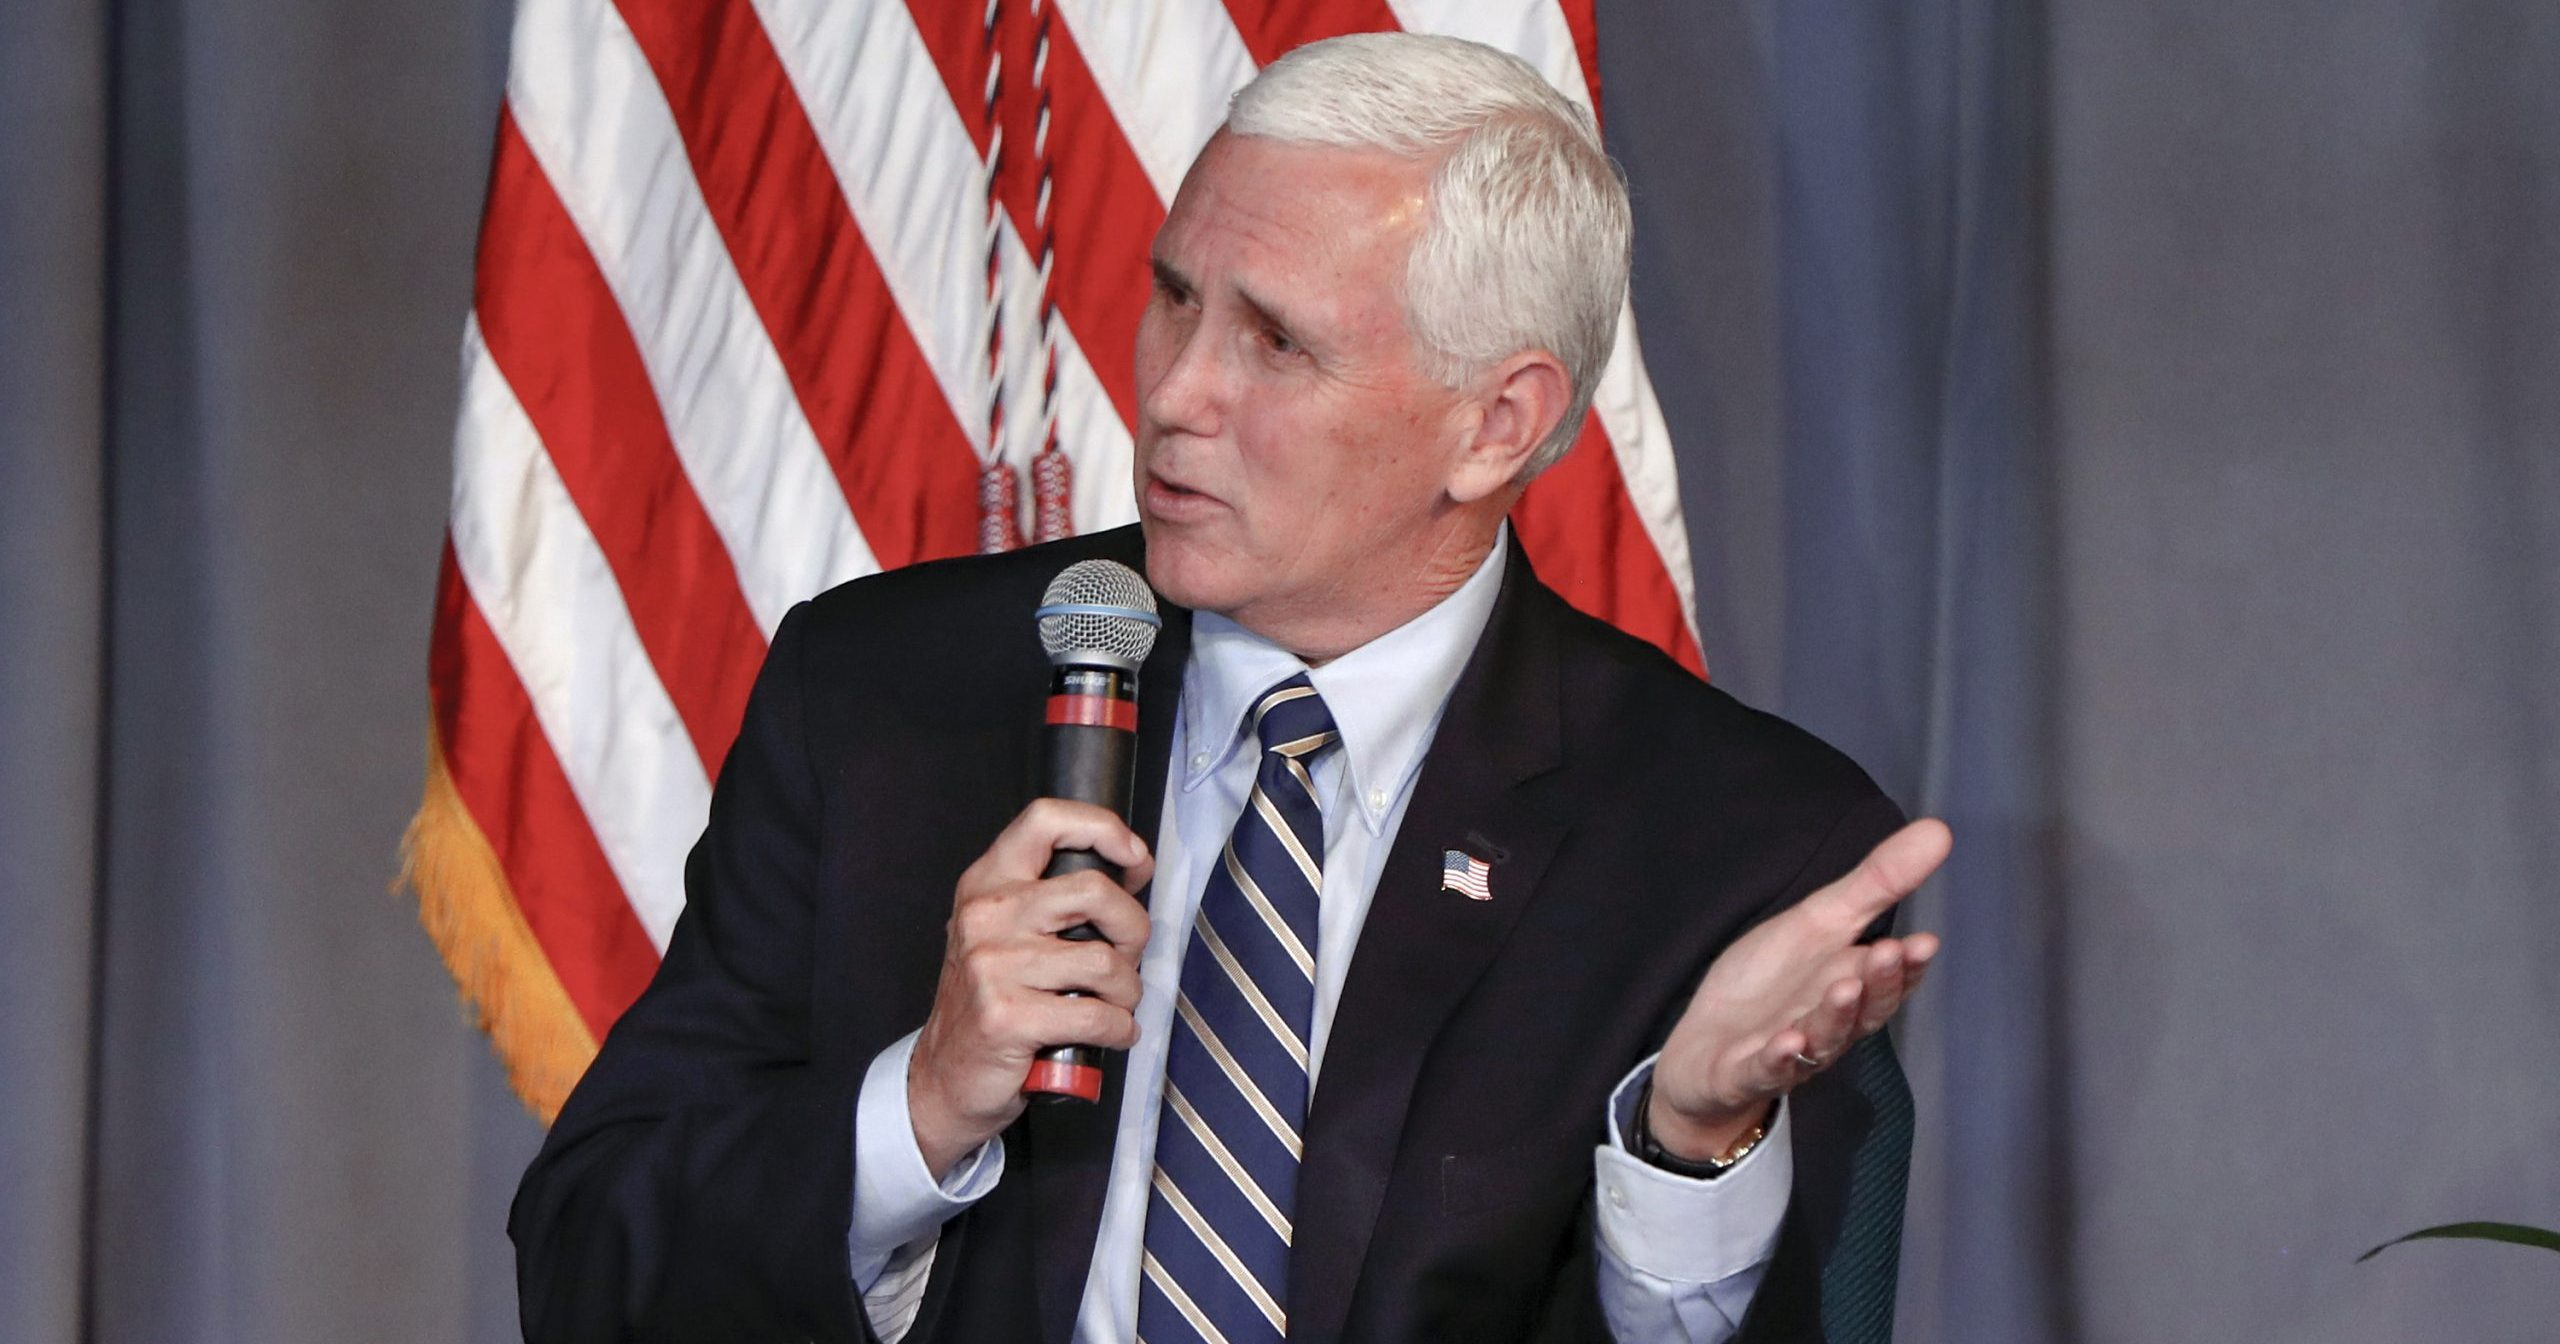 Vice President Mike Pence speaks during a discussion at the Covenant Church of Pittsburgh in Wilkinsburg, Pennsylvania, on June 12, 2020.